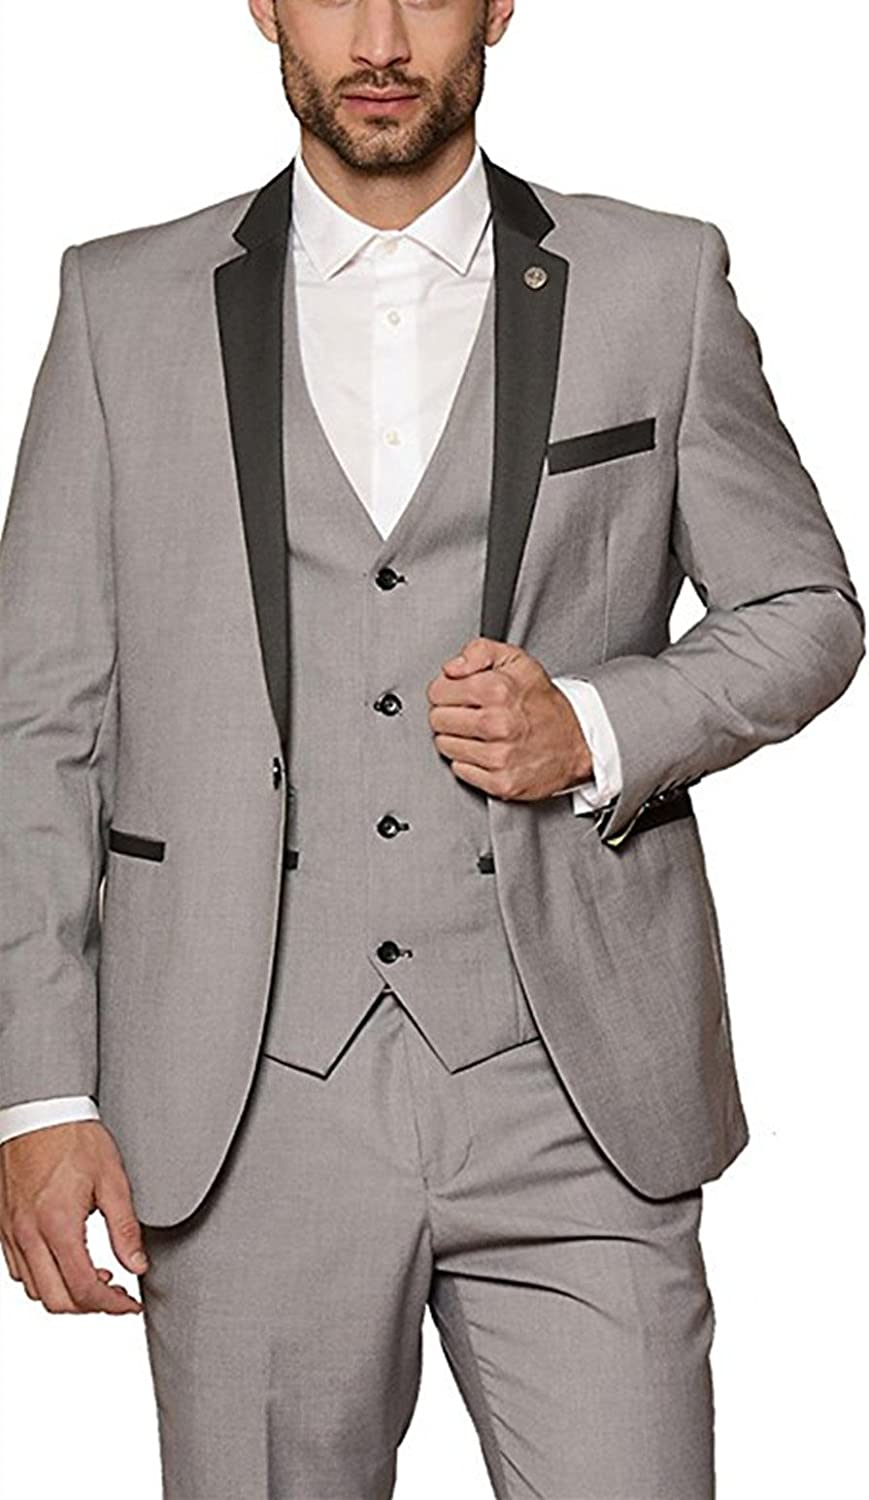 Suxiaoxi Mens Gentle Shawl Lapel One Button Tuxedo Groom Suits 3 Pieces